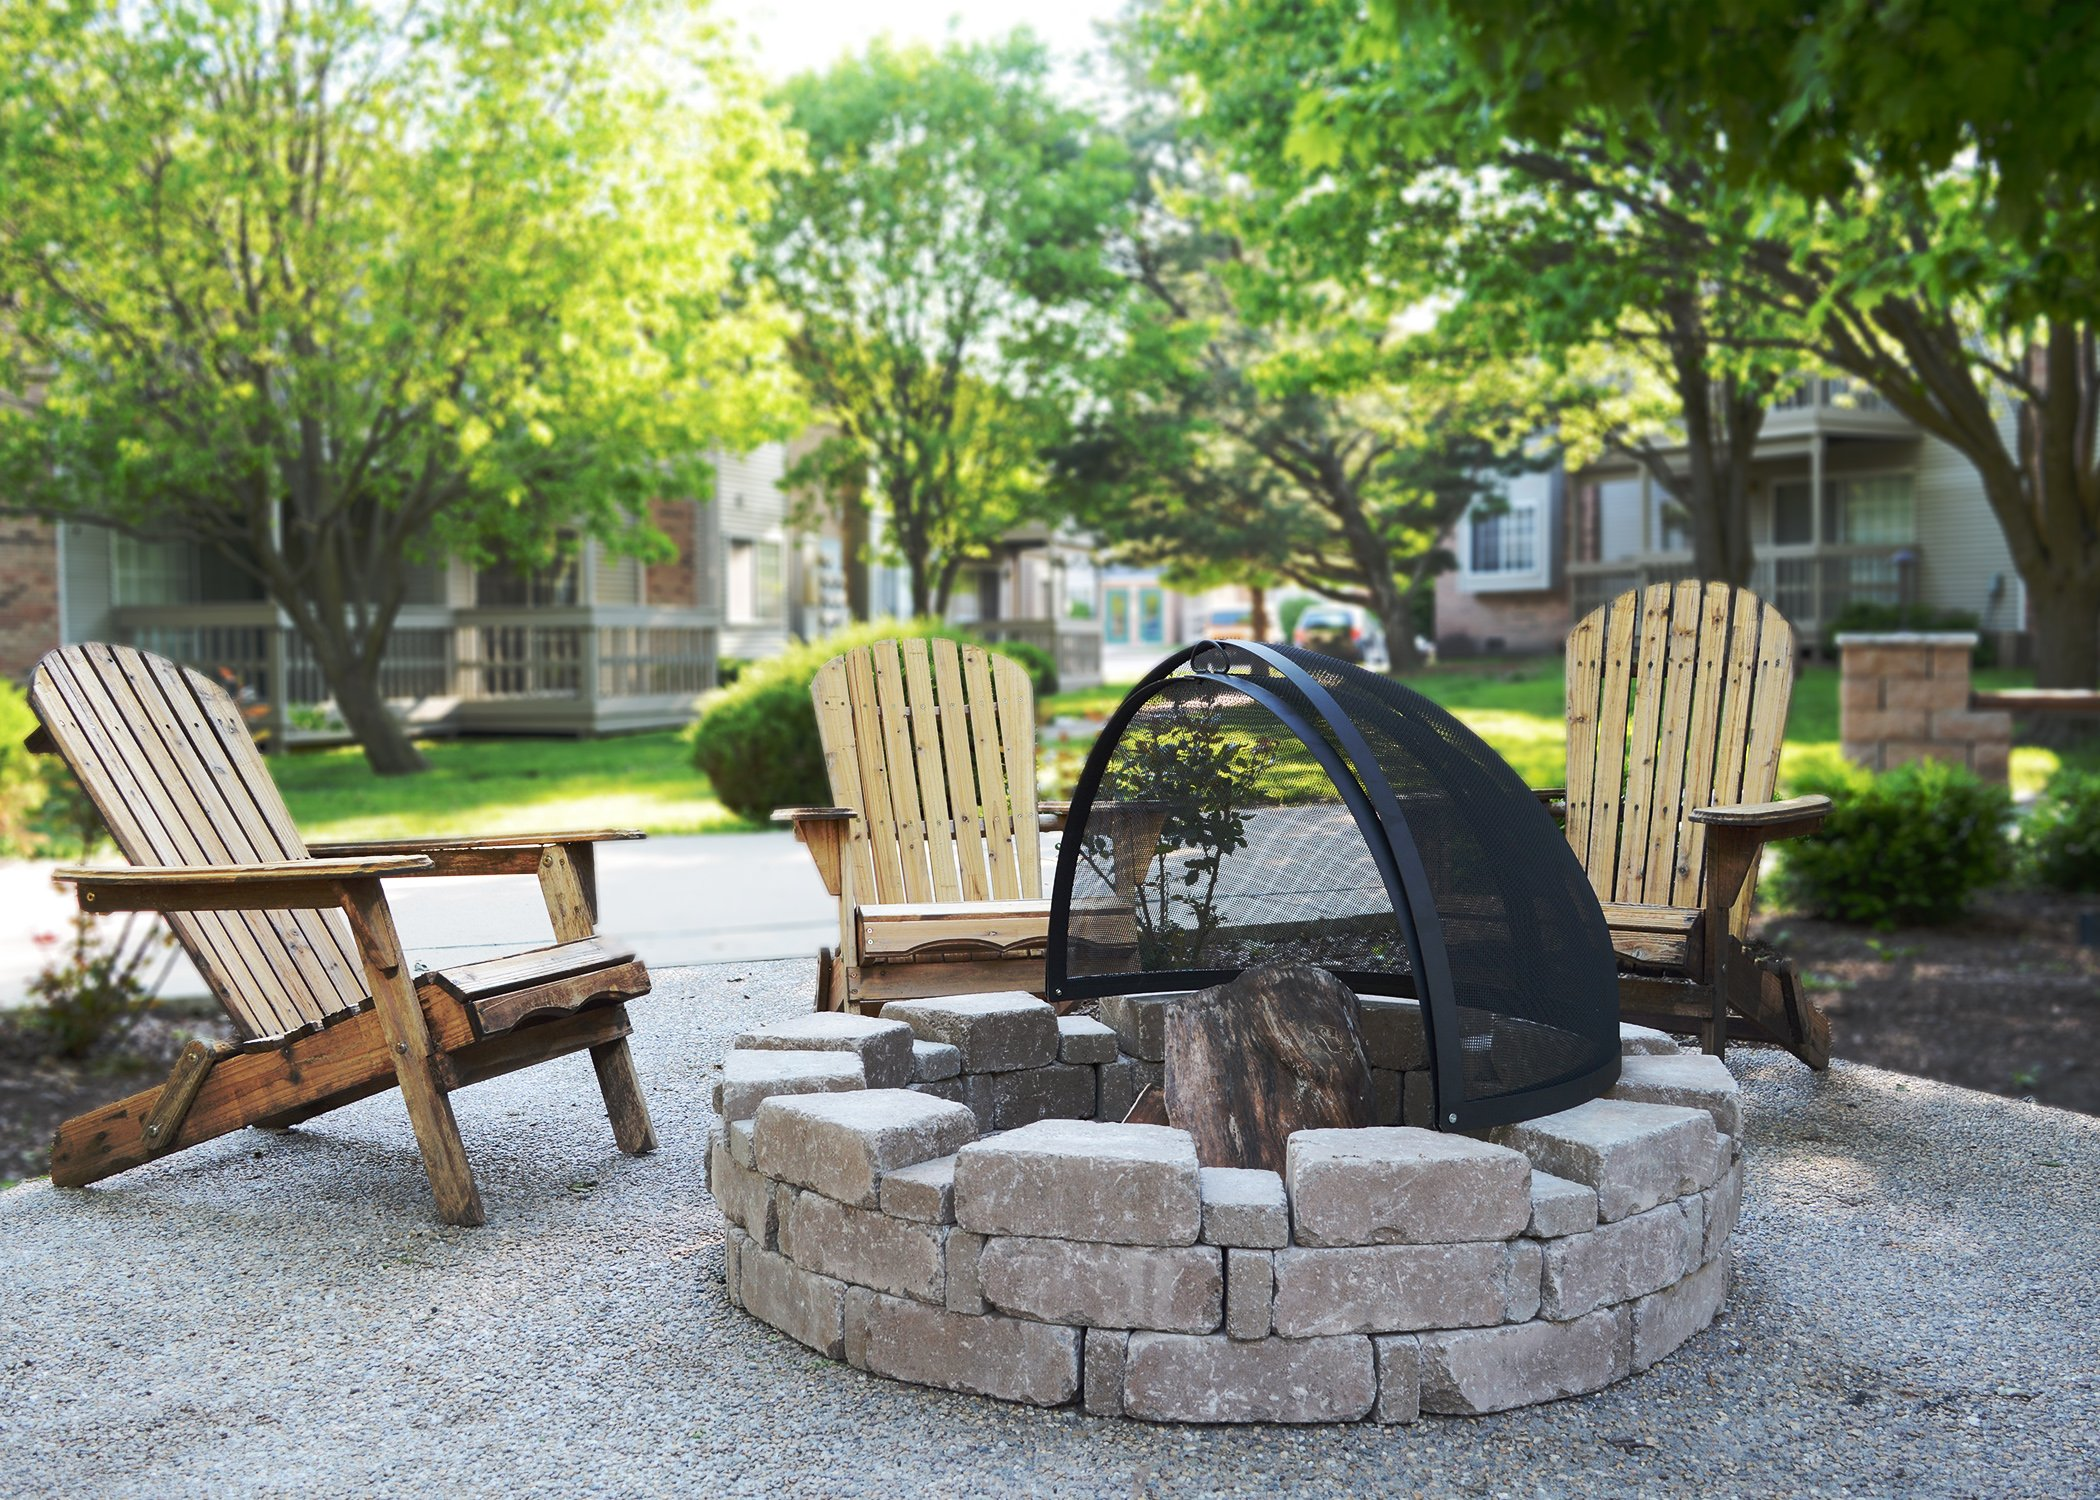 32-Inch Fire Pit Easy Access Spark Screen